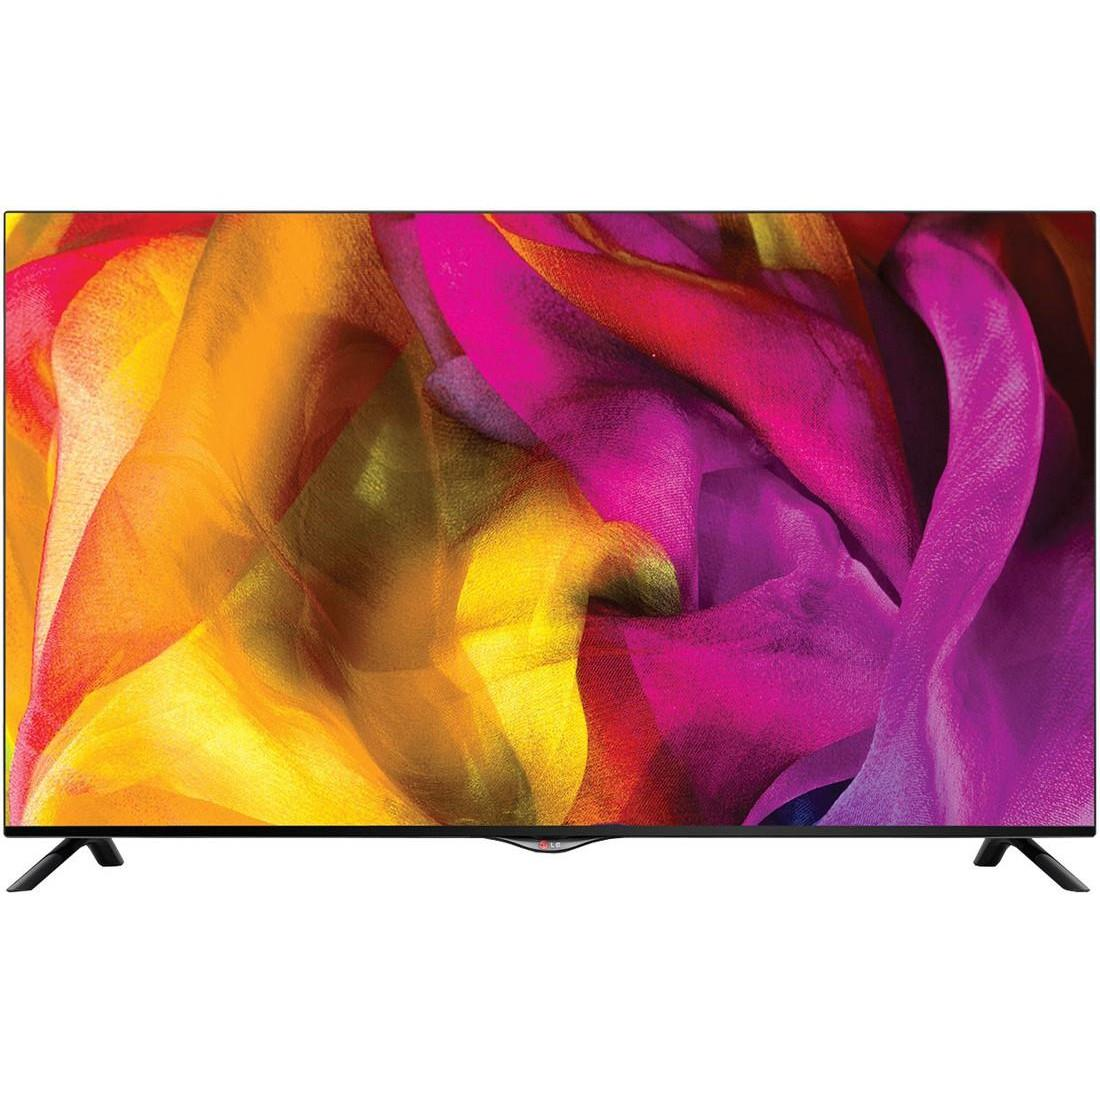 LG 42UB820T 106 cm (42) LED TV (Ultra HD (4K), Smart) Image